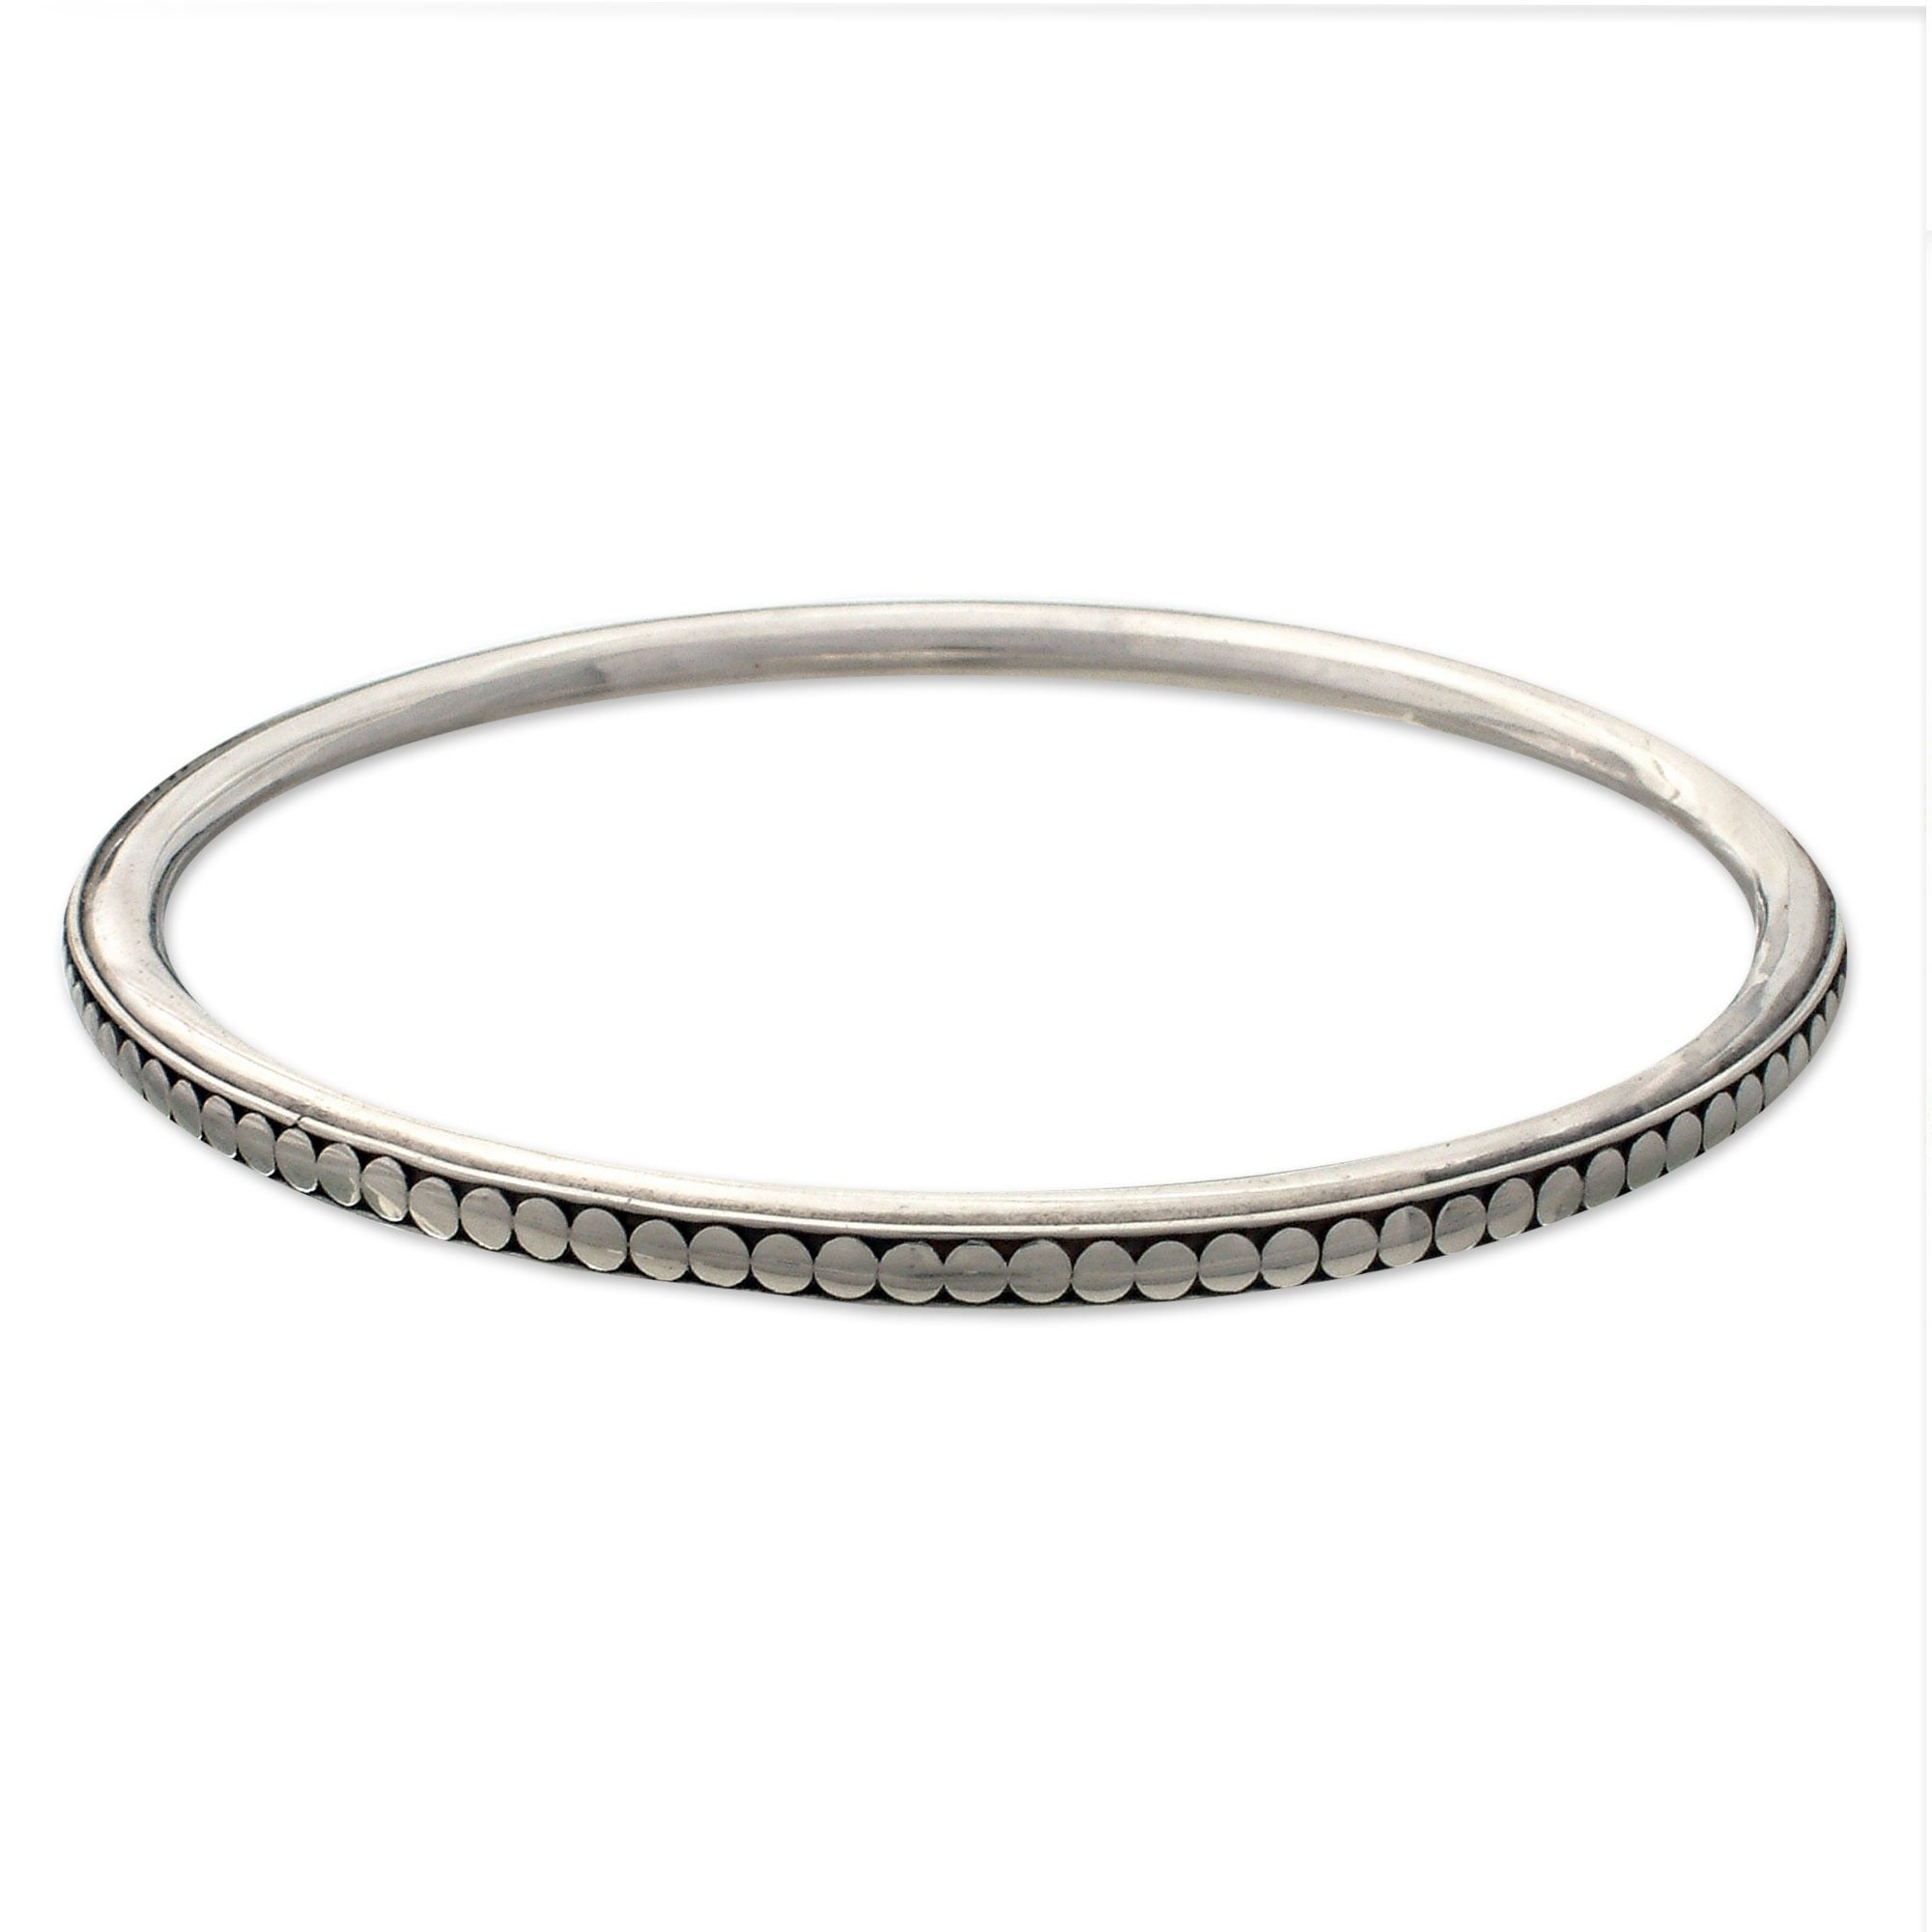 small charm silver double p seven bangles link heart inch uk with chunky sterling asp school bracelets bangle fastening lock